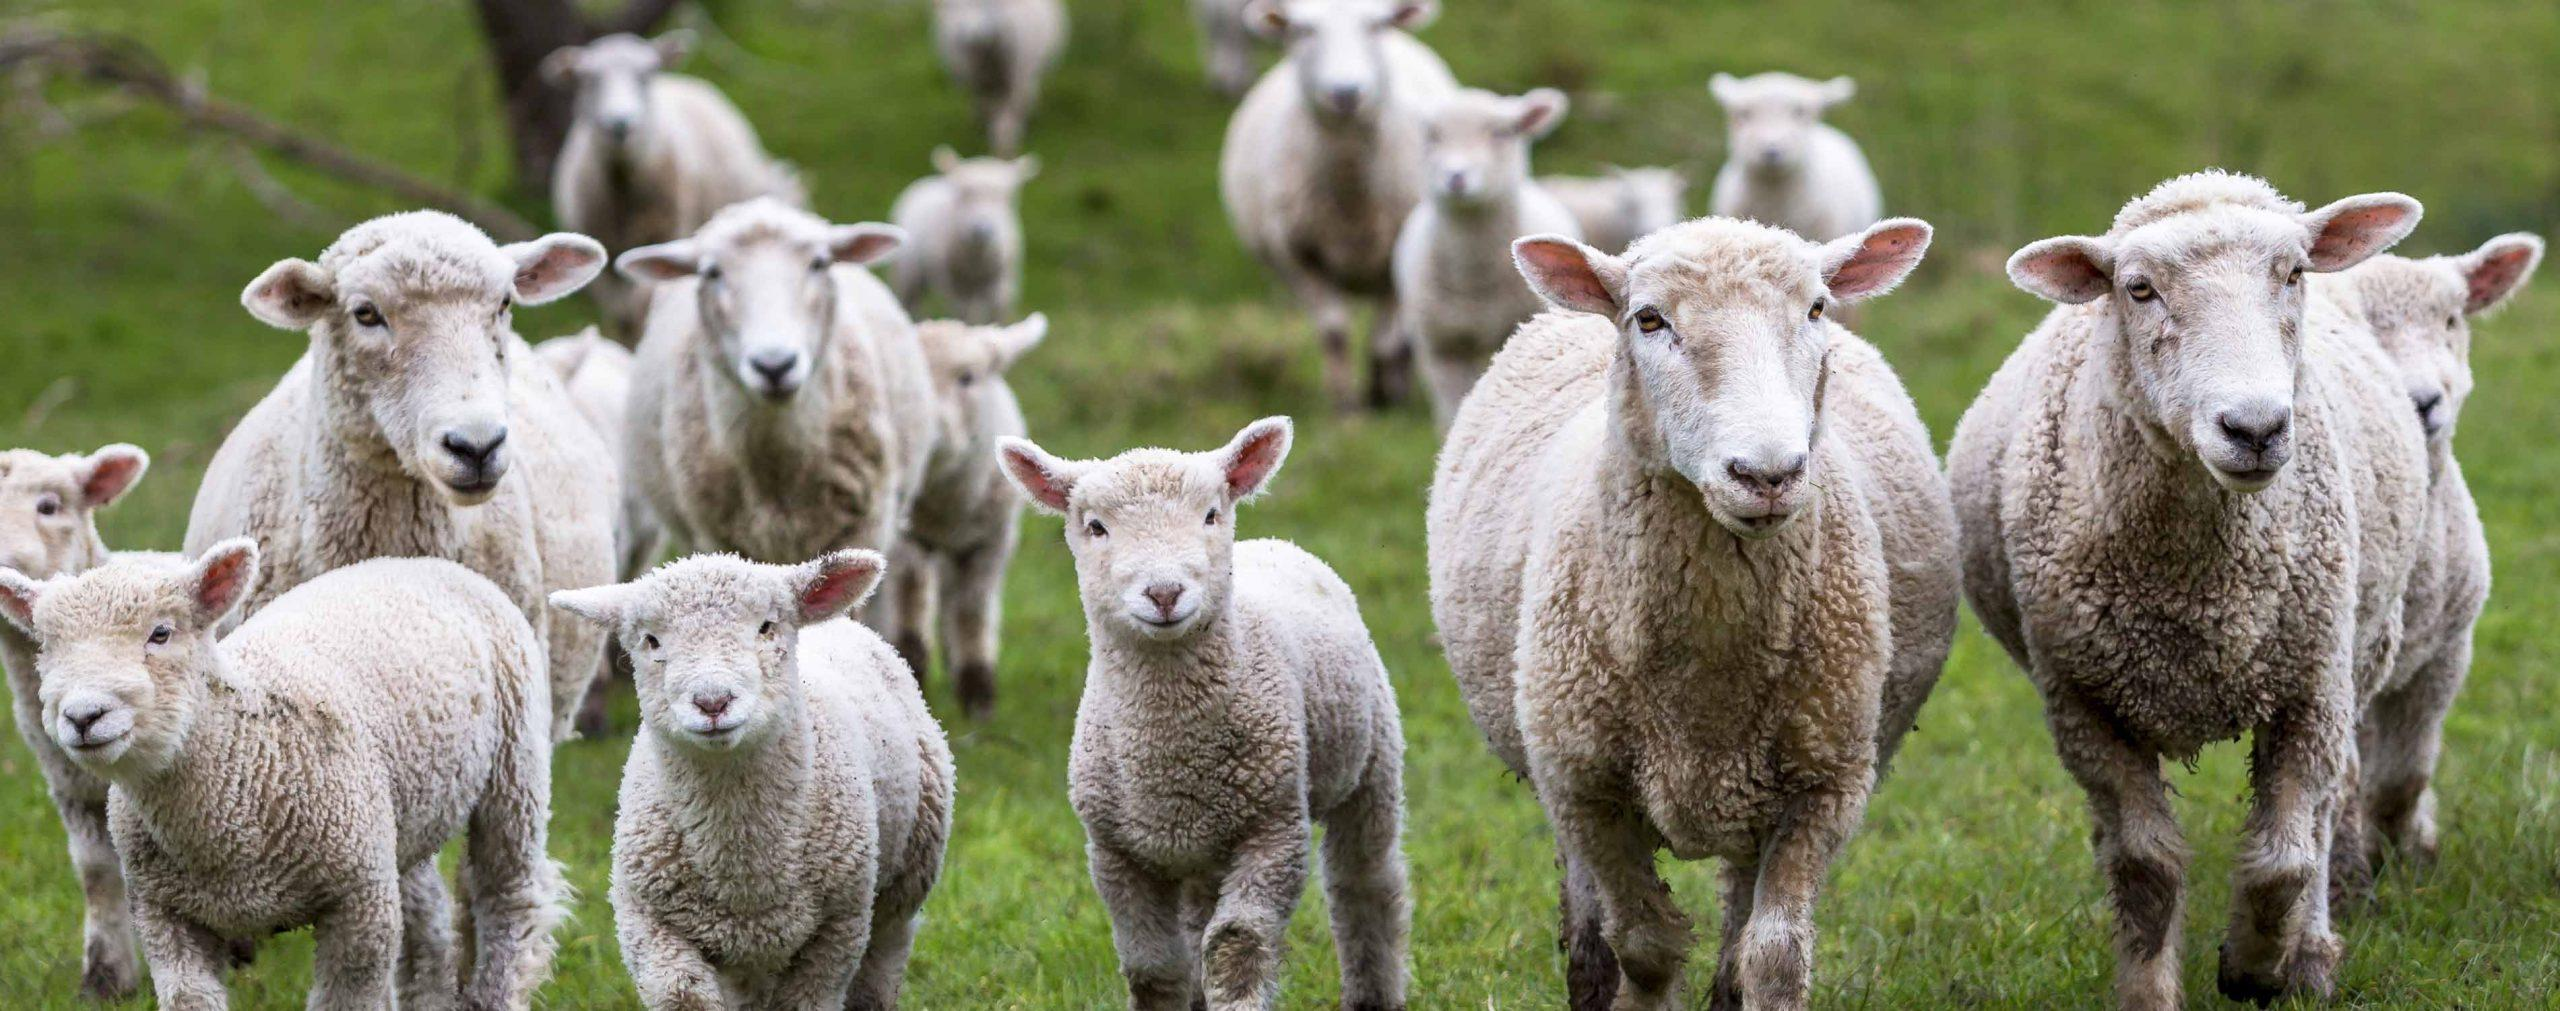 Sheep can help mitigate climate change